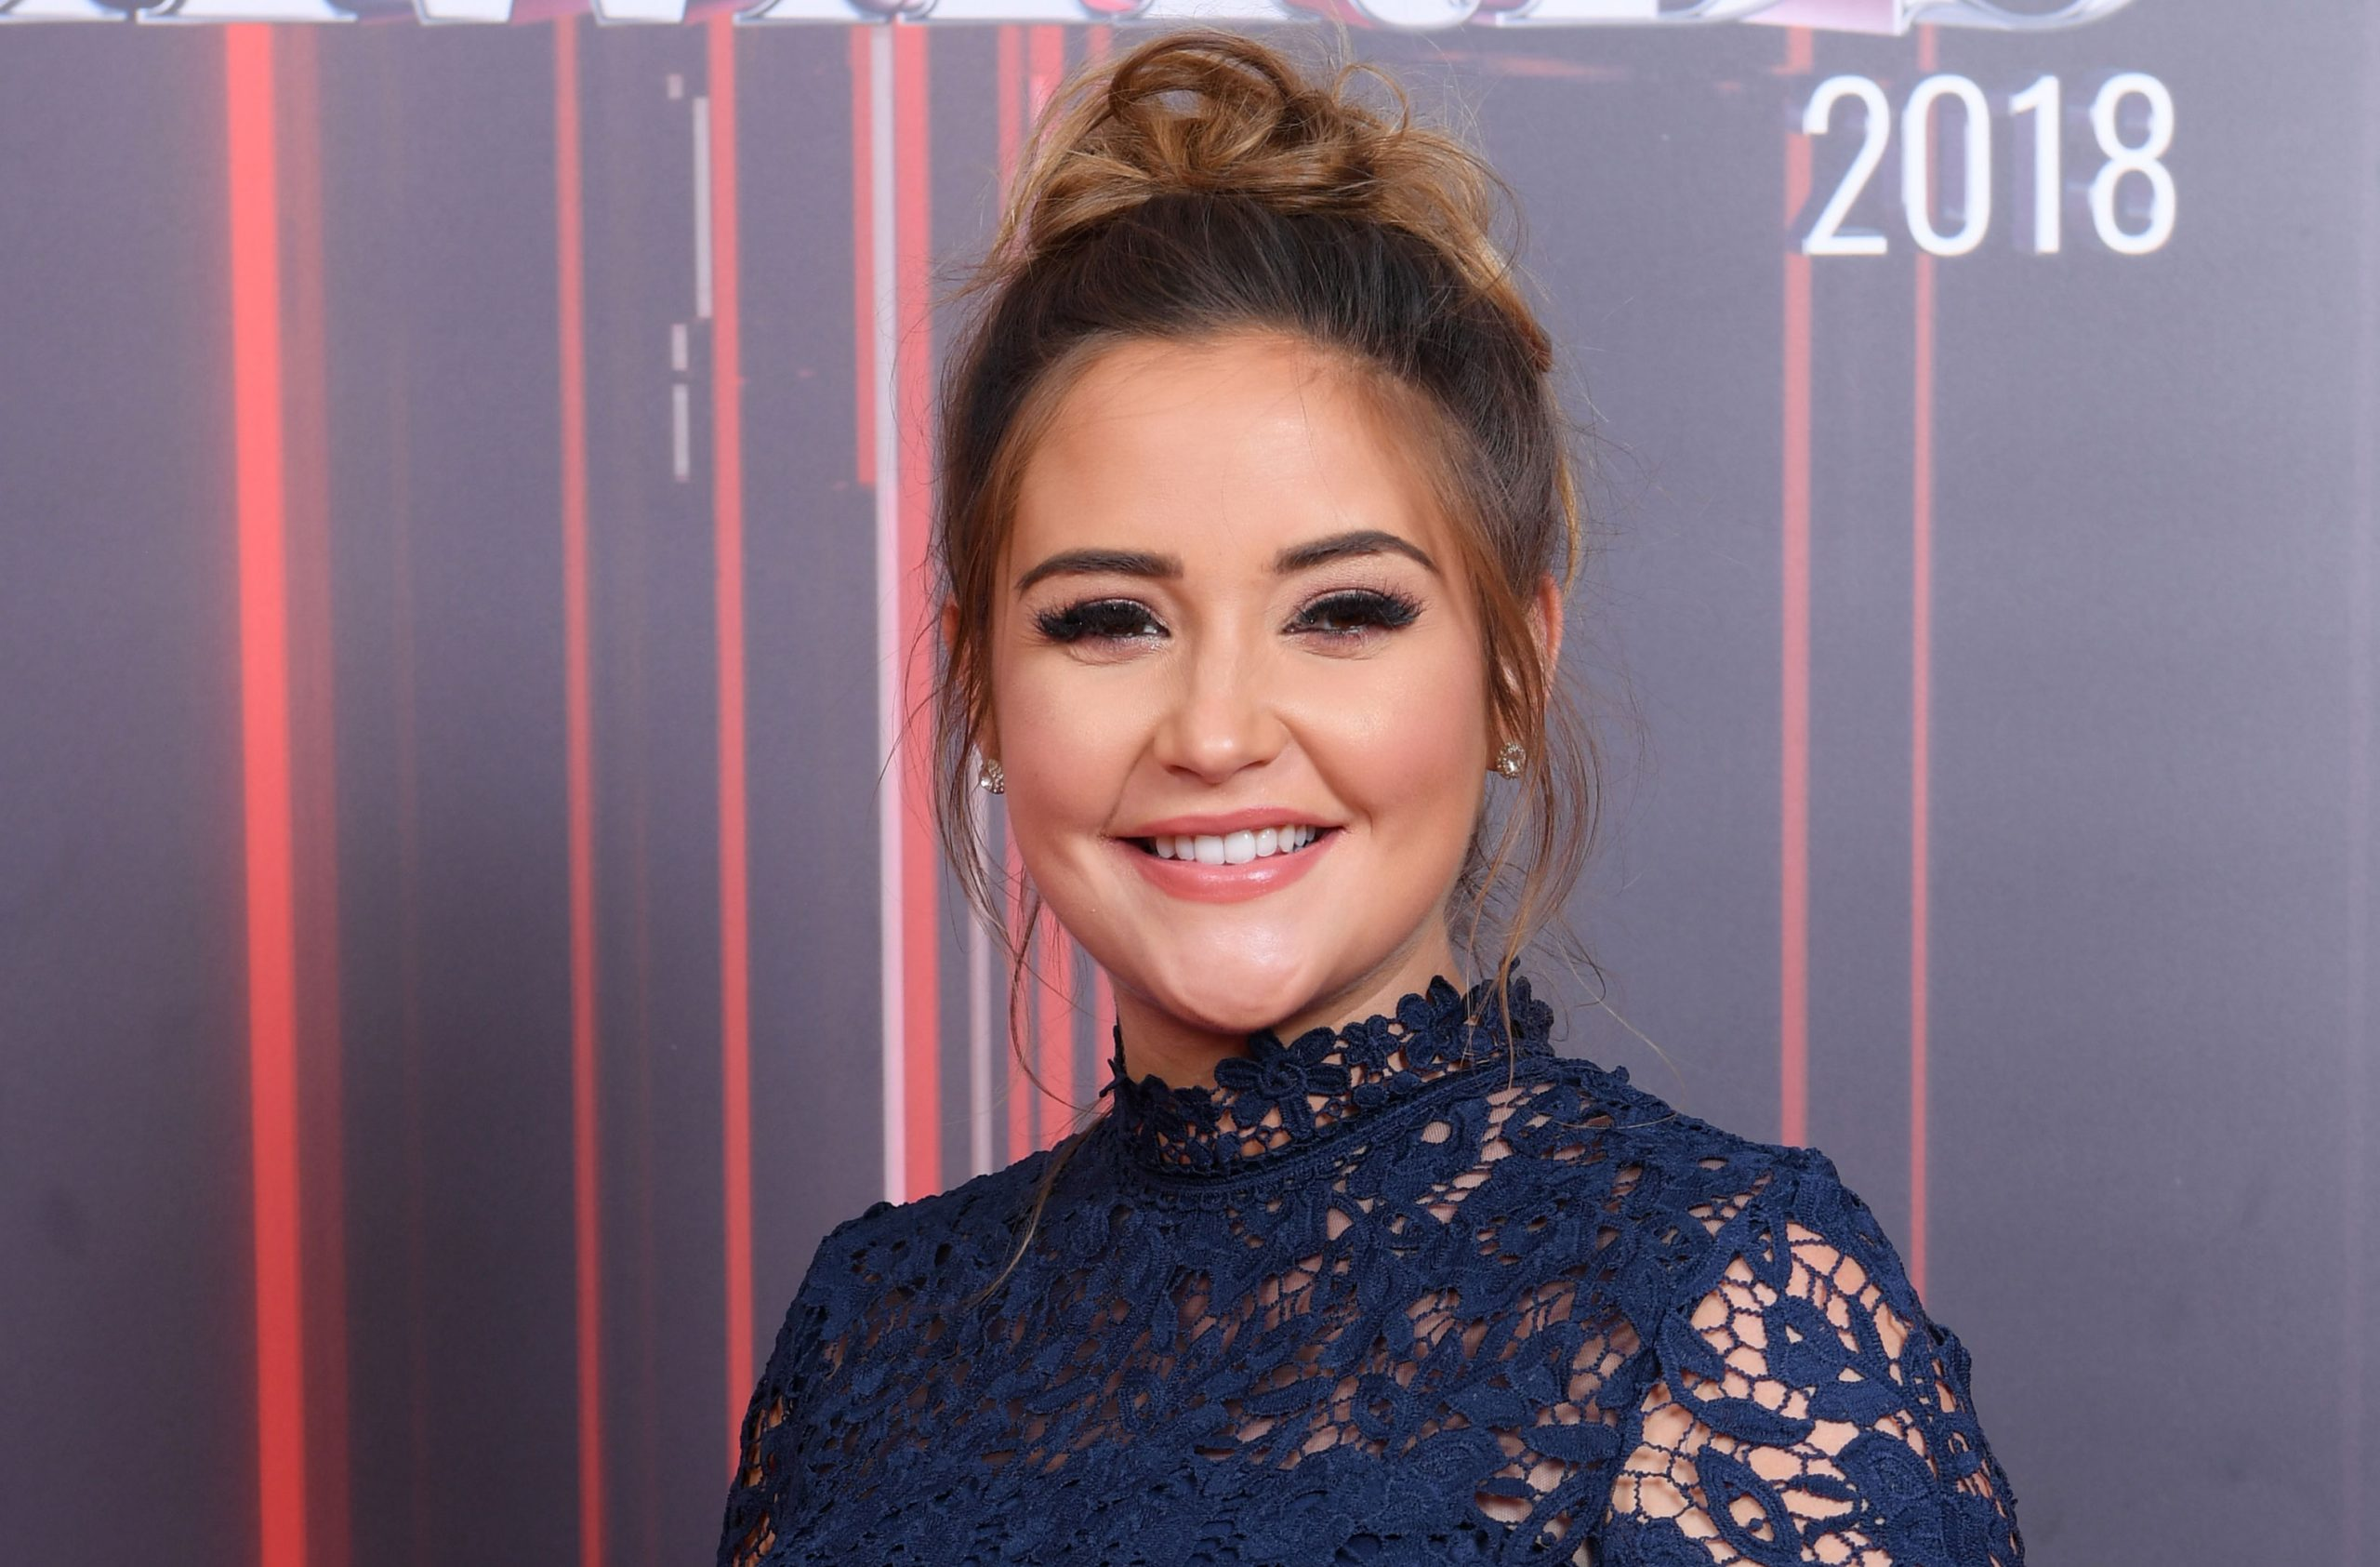 Jacqueline Jossa gender reveal